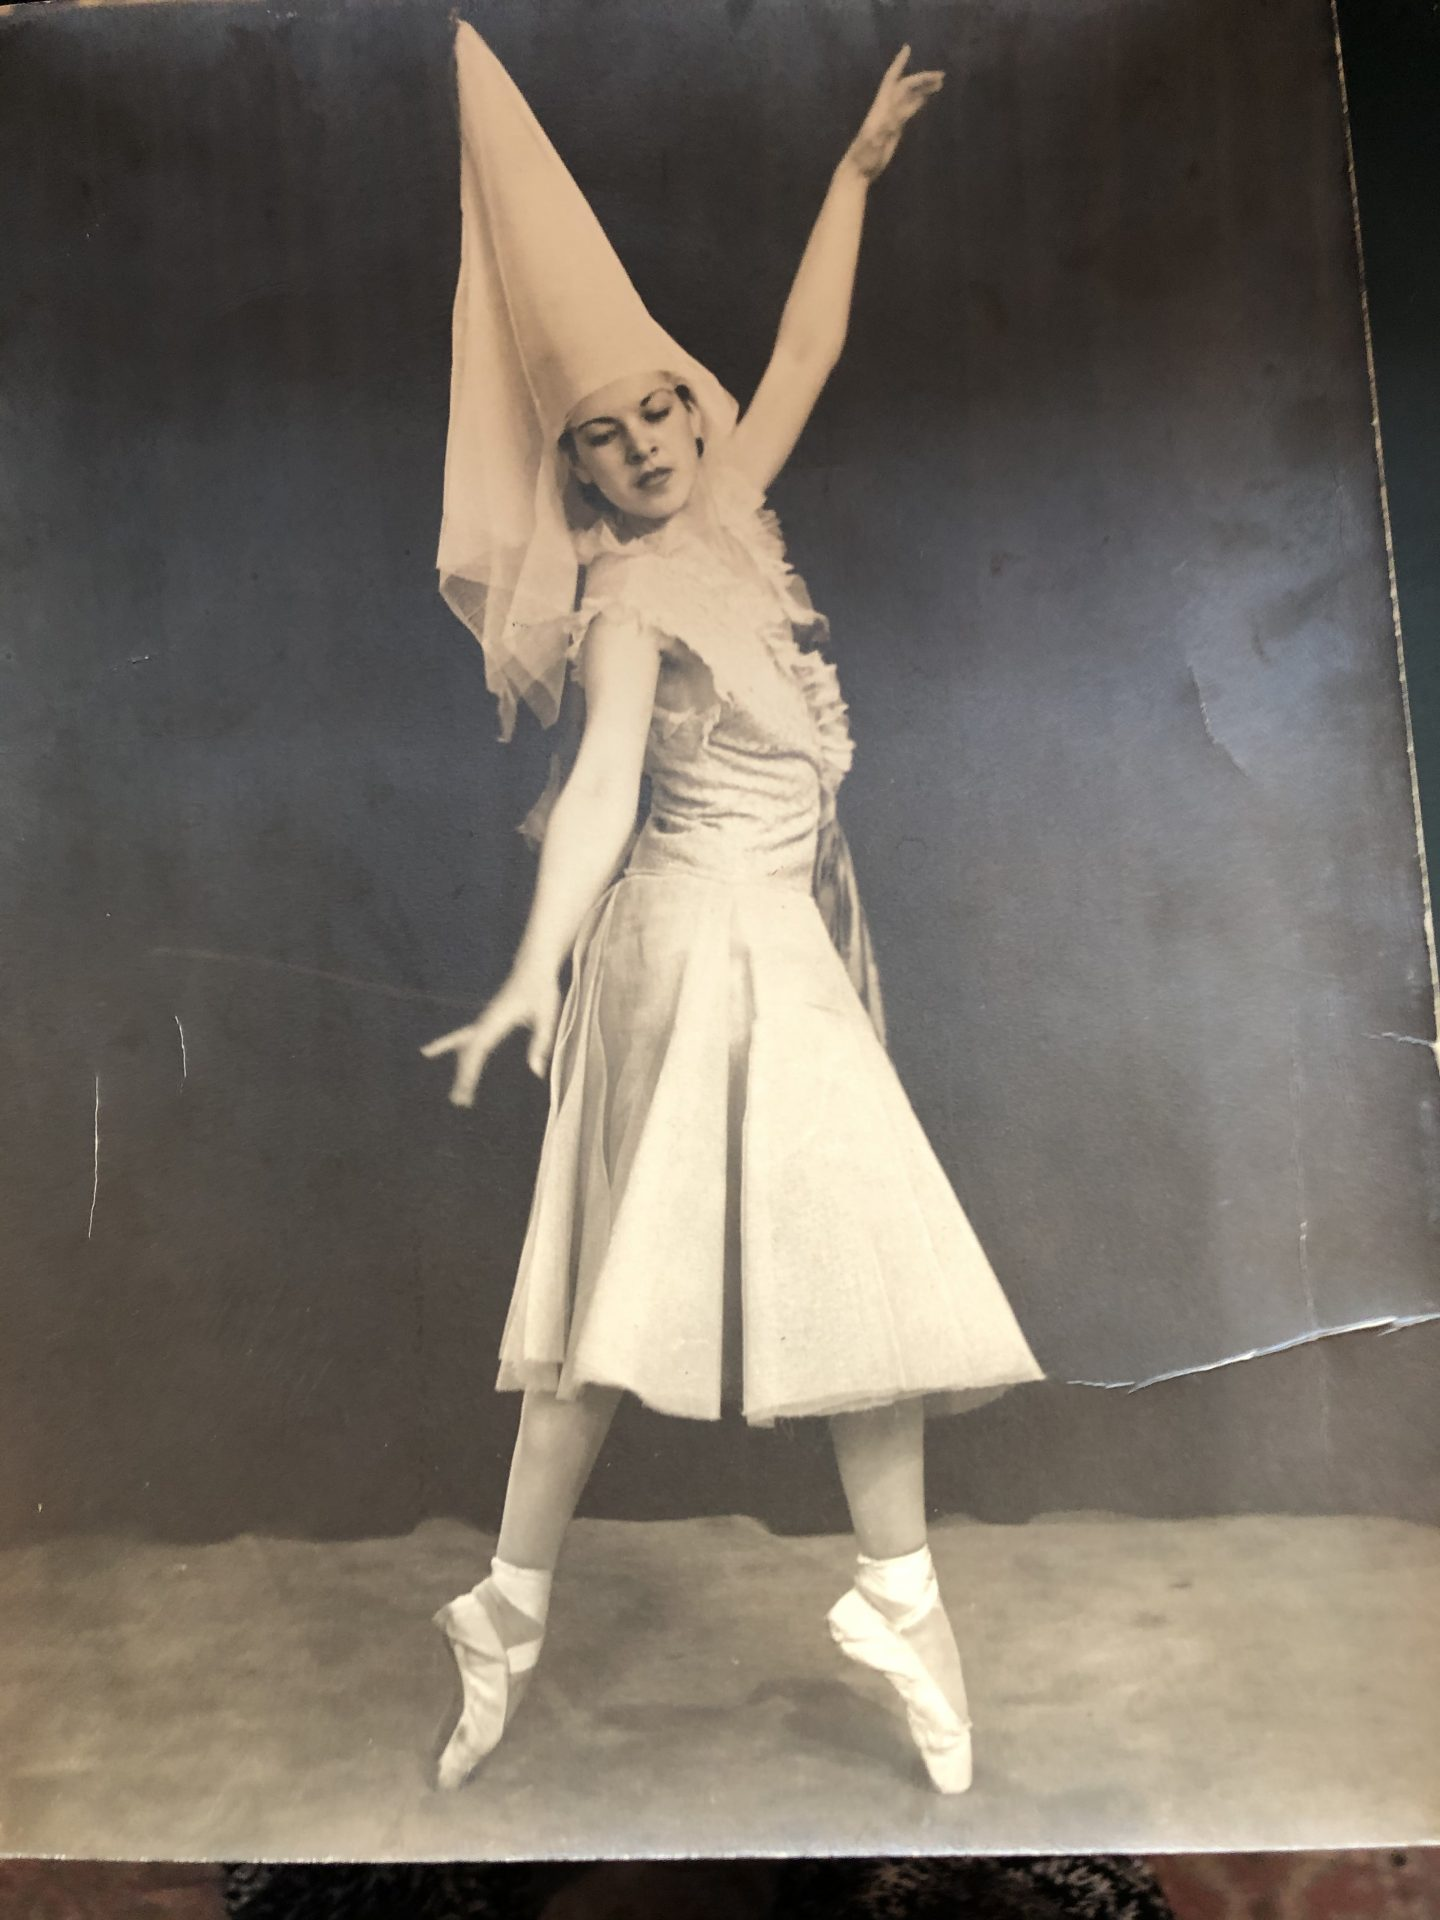 Mom dancing in her 20s.